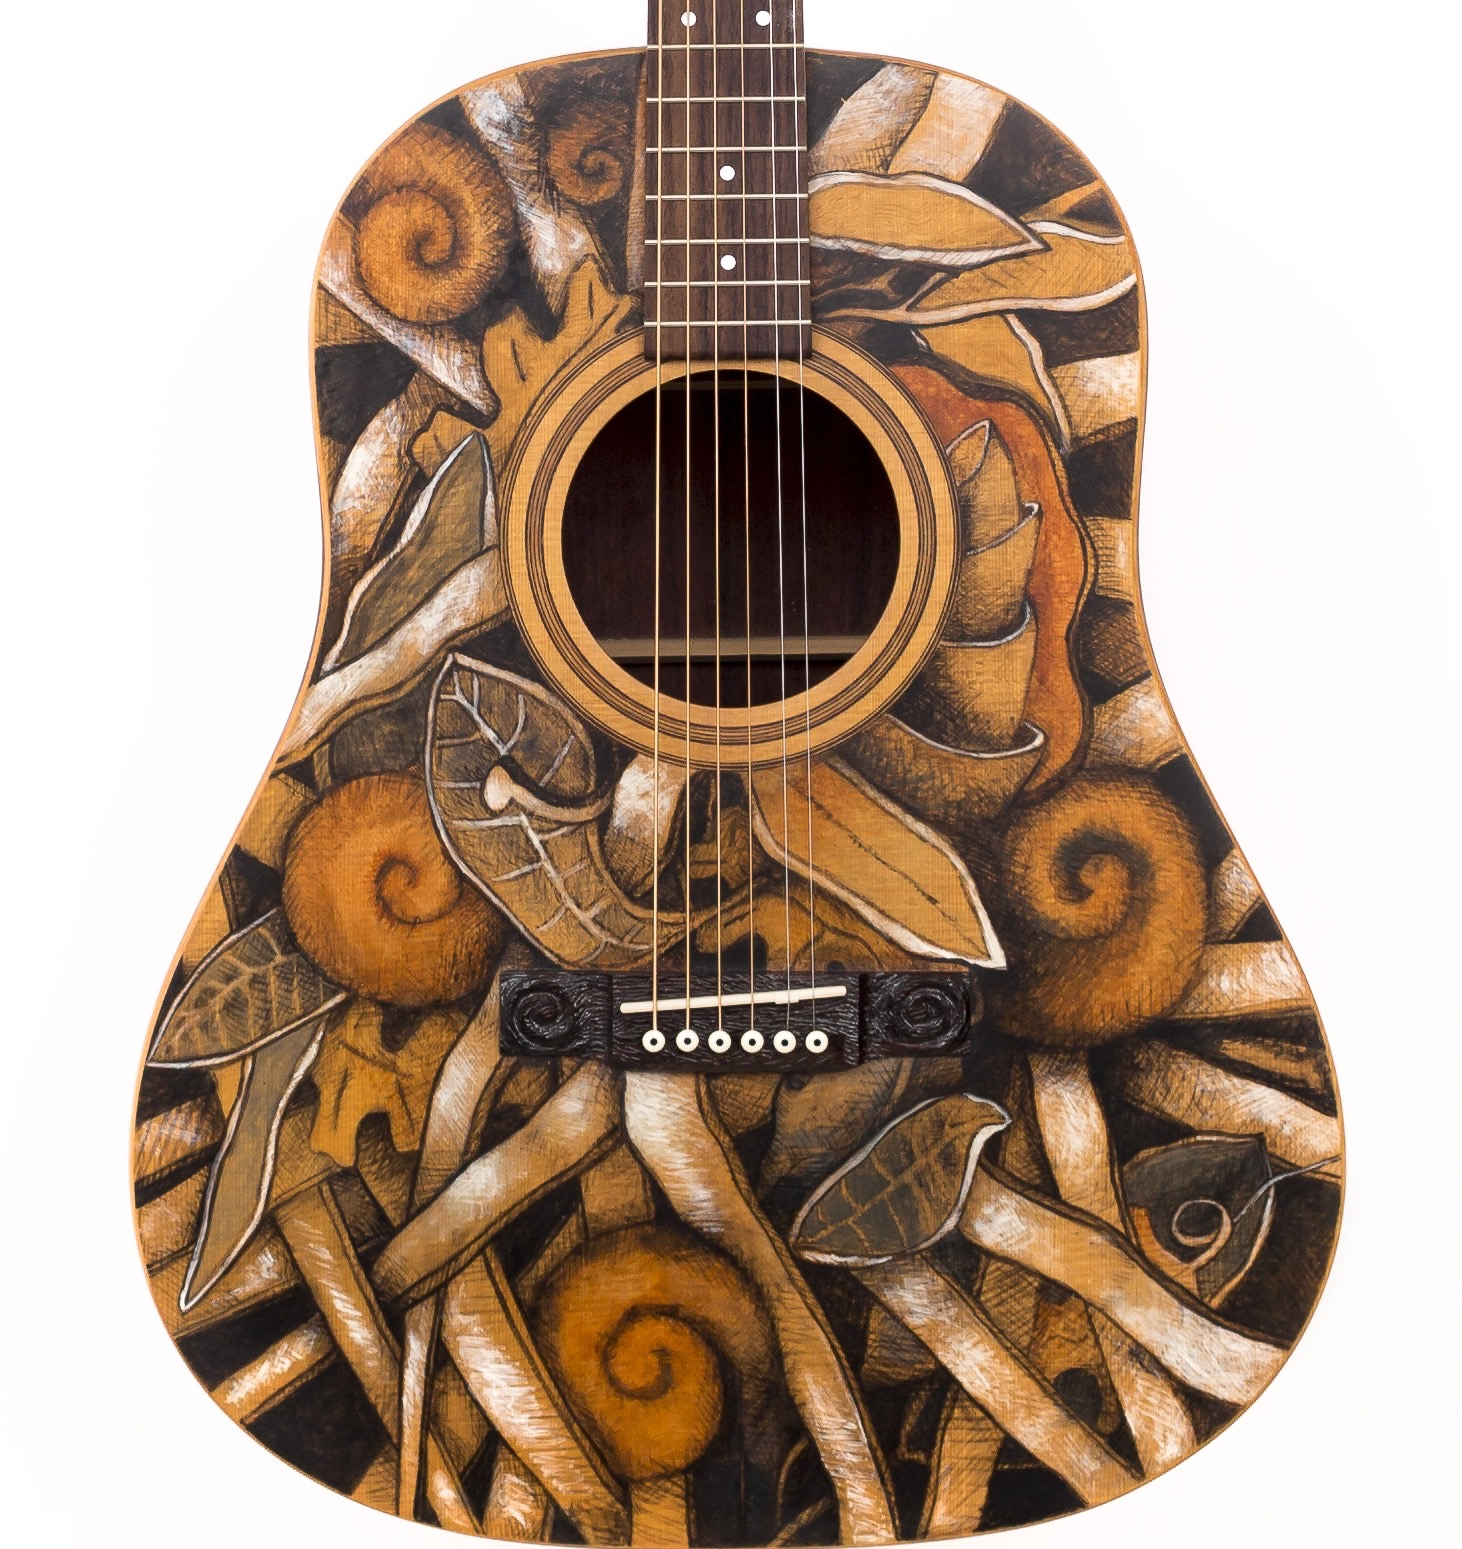 Ribbon and Spirals  motif. Artists pigment in Lacquer. Deep dreadnaught sized guitar, custom made by Peter Cree. Paduak sides and back, sitka spruce top. 1250.00 SOLD